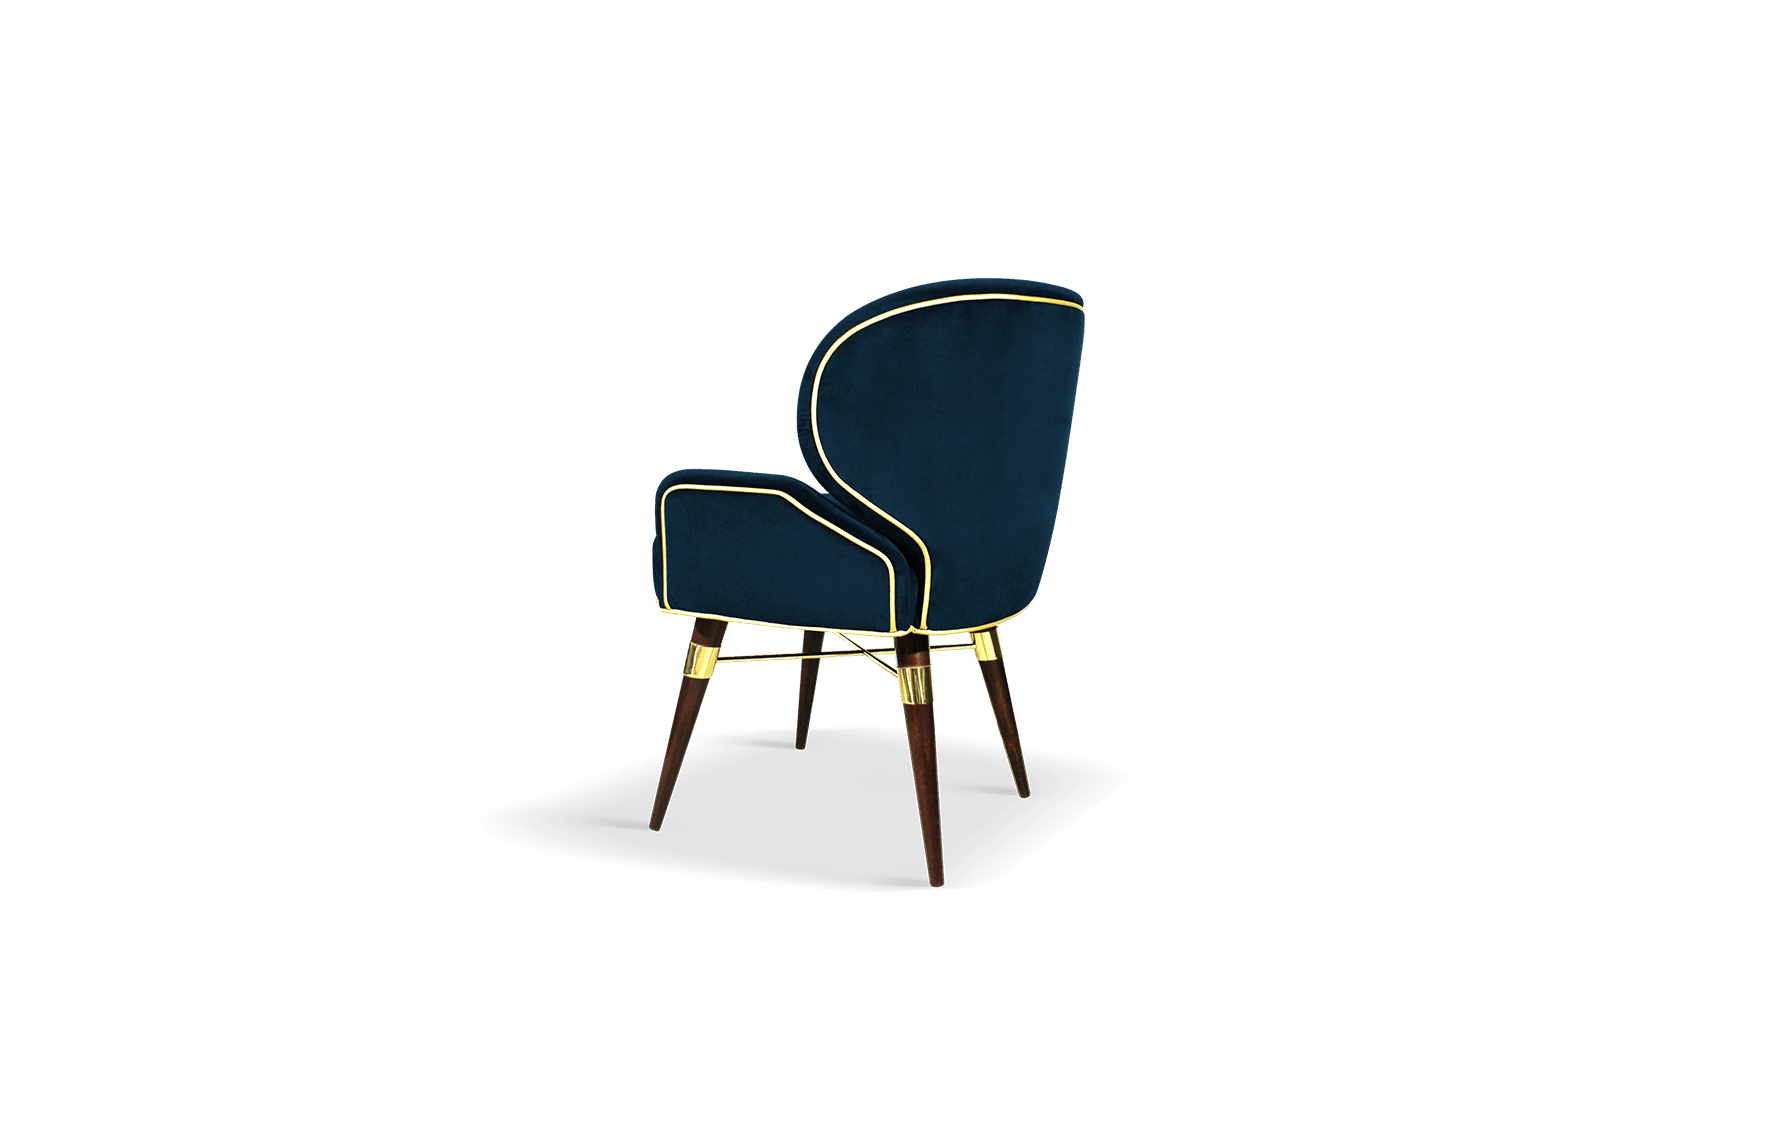 Louis I Mid-Century Dining Chair in classic blue velvet with gold piping